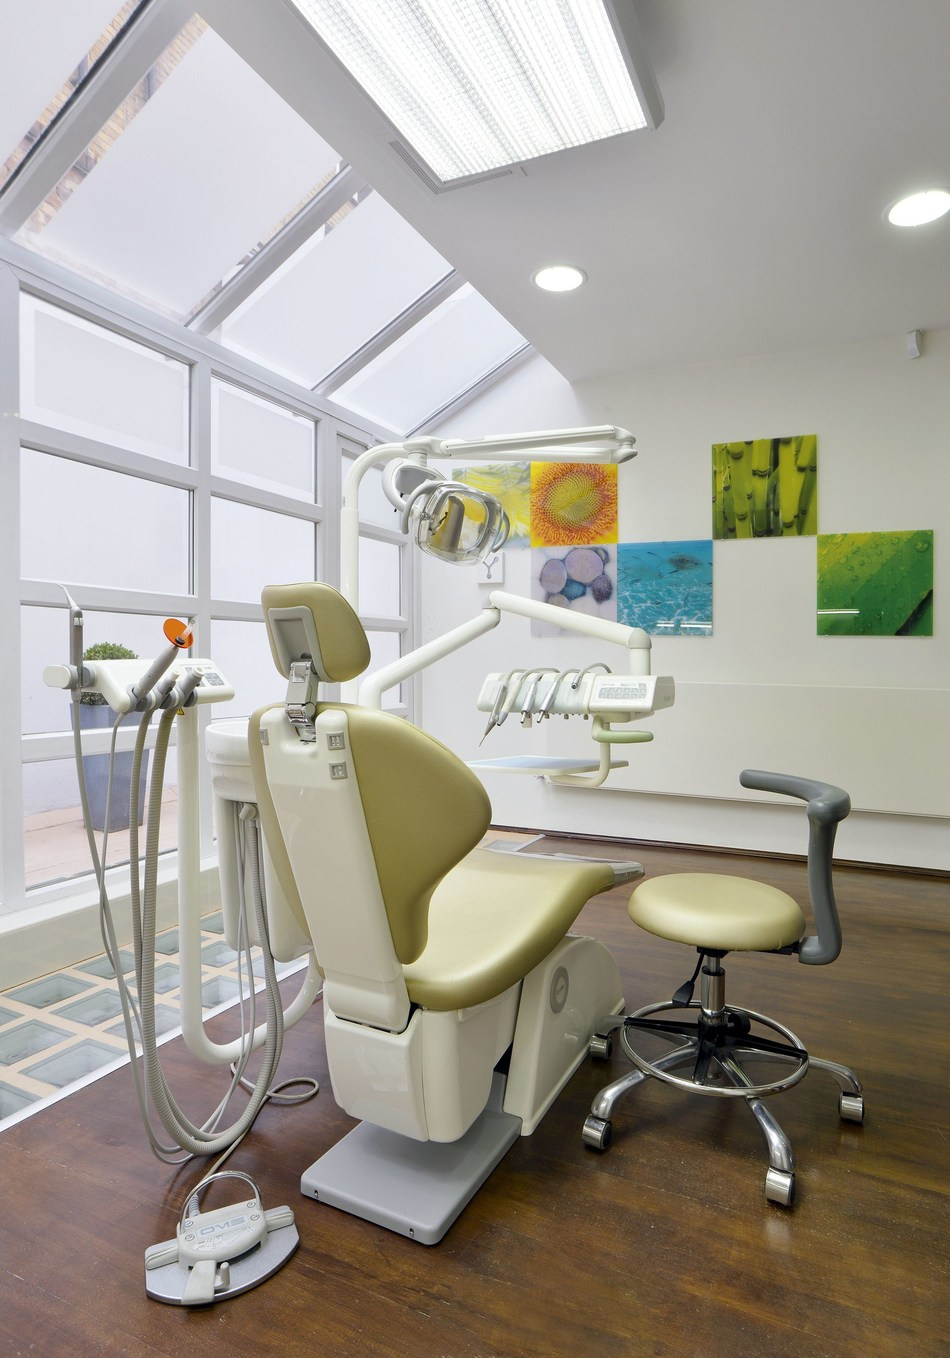 Treatment room 1 at Implantcenter Dentistry and Oral Surgery, London (PRNewsfoto/Implantcenter Dentistry)